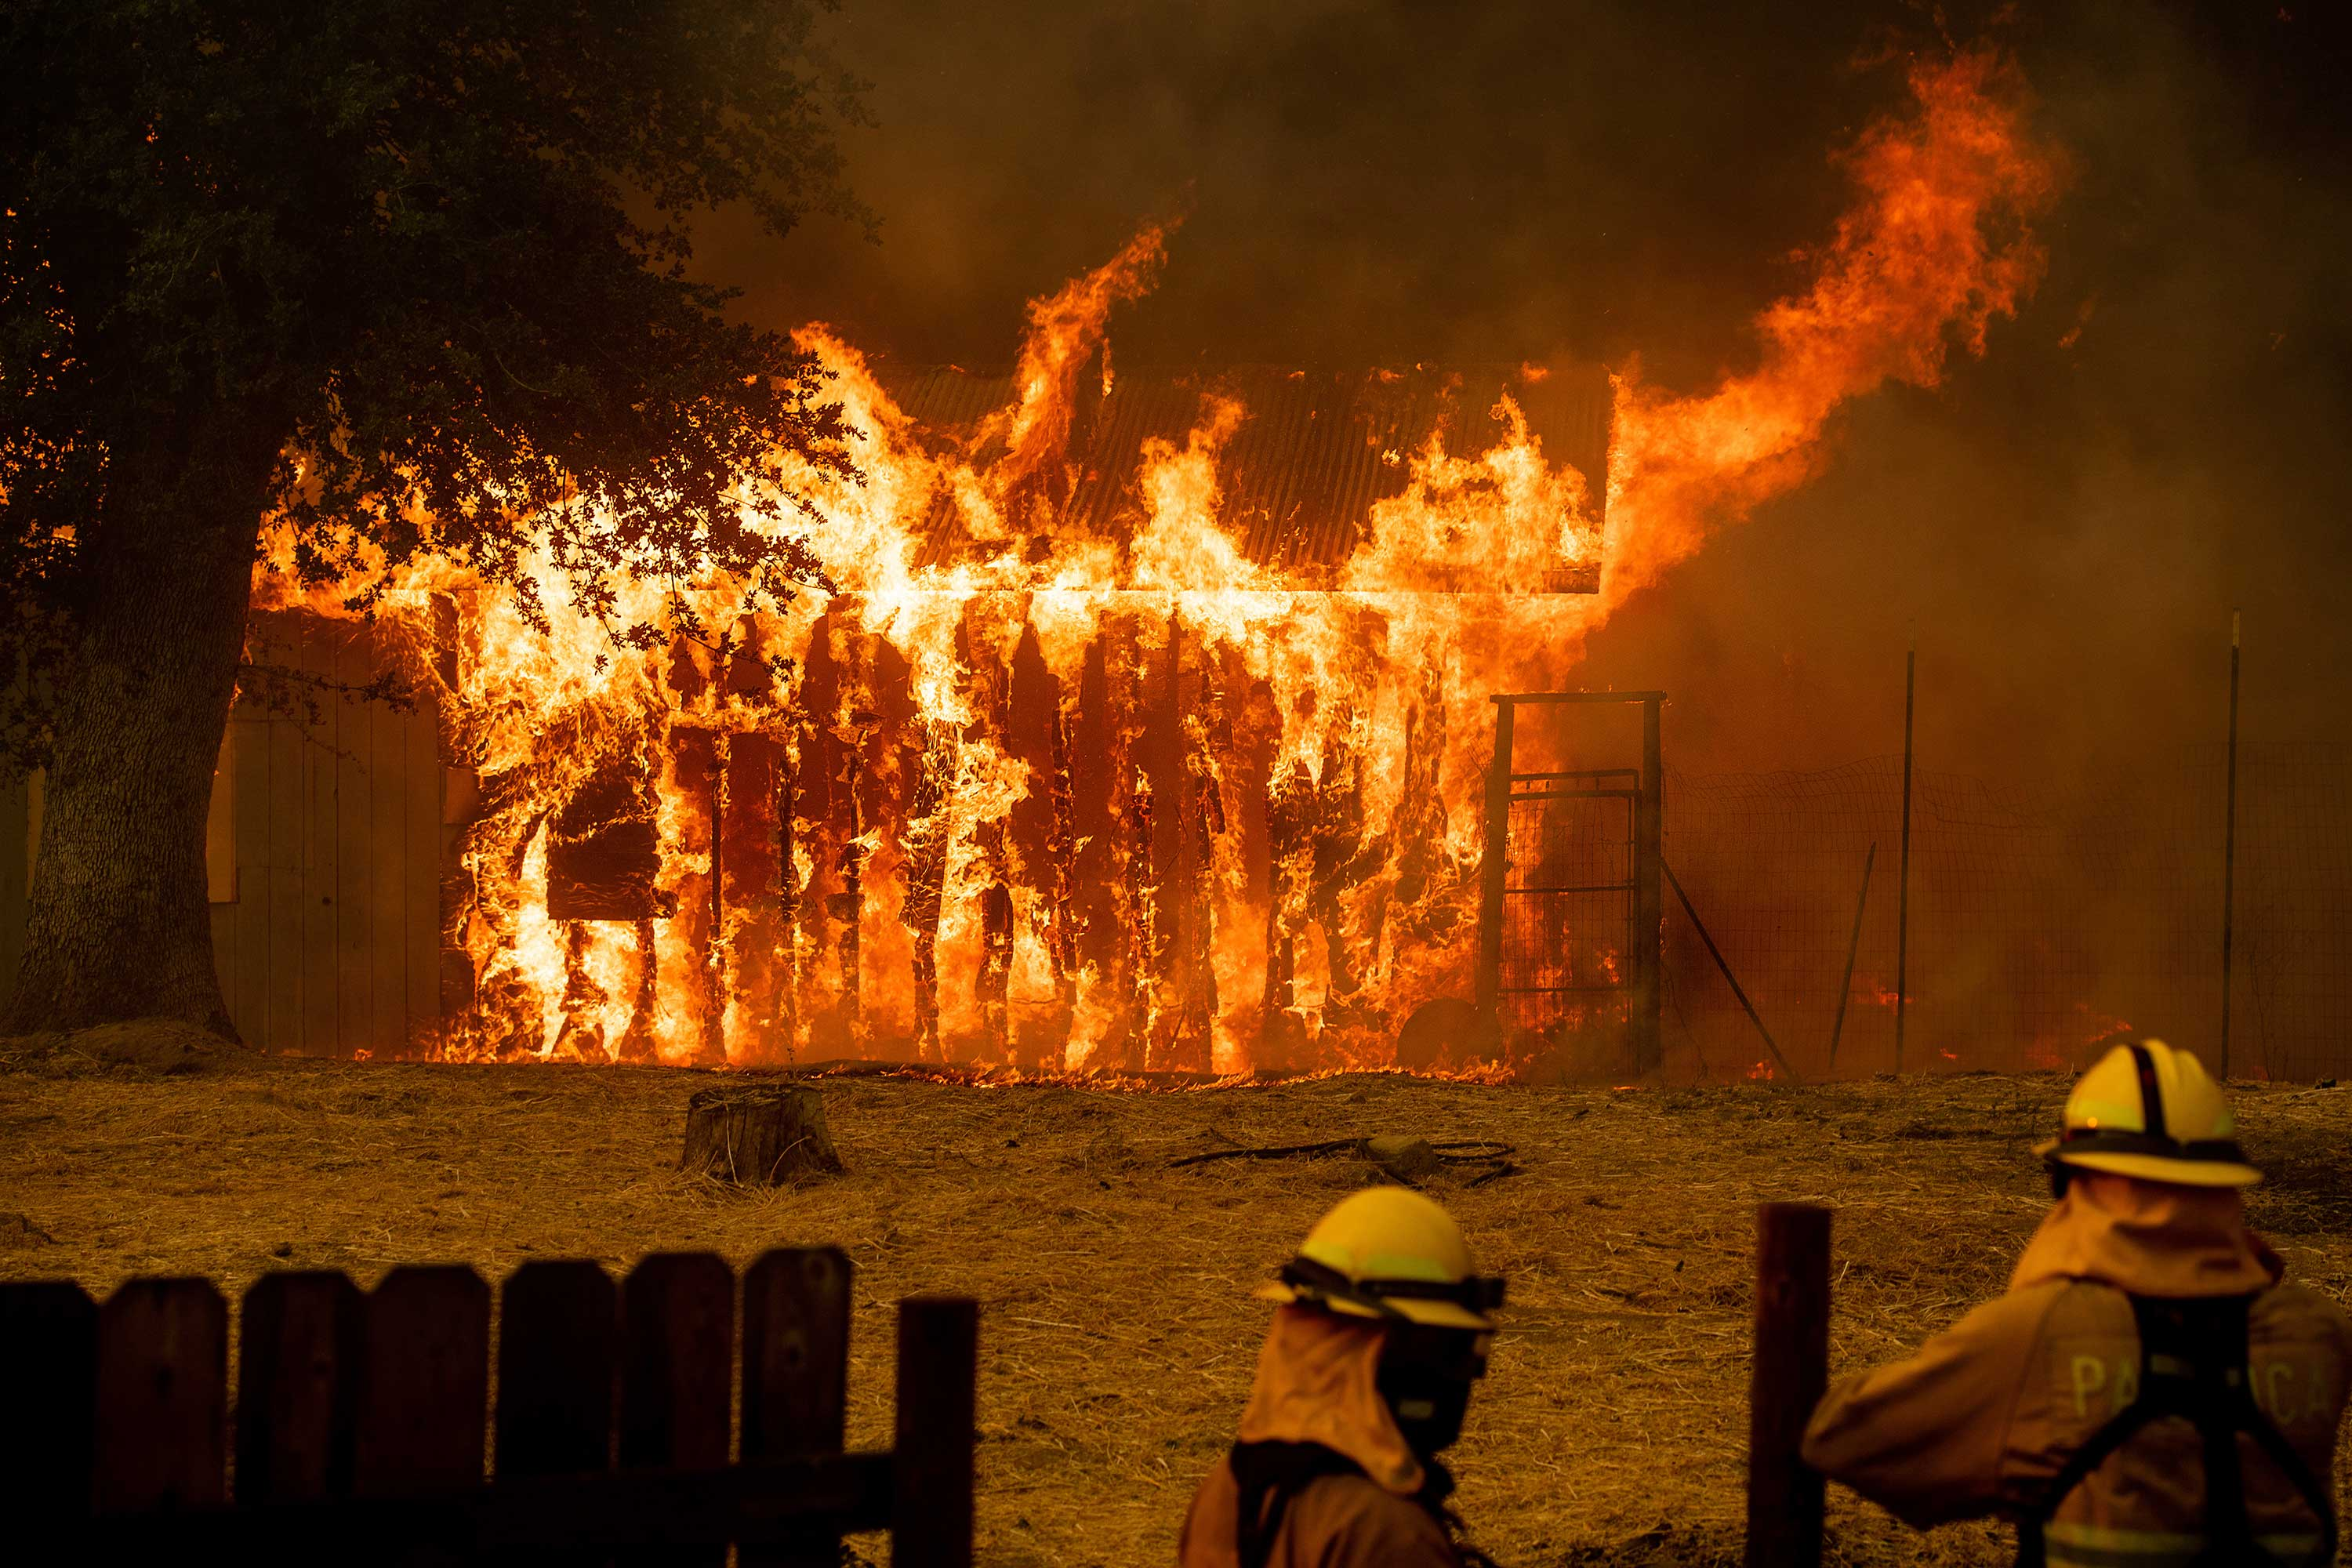 <div class='meta'><div class='origin-logo' data-origin='none'></div><span class='caption-text' data-credit='Noah Berger/AP Photo'>Firefighters monitor a burning outbuilding to ensure flames don't spread as the River Fire burns in Lakeport, Calif., on Monday, July 30.</span></div>